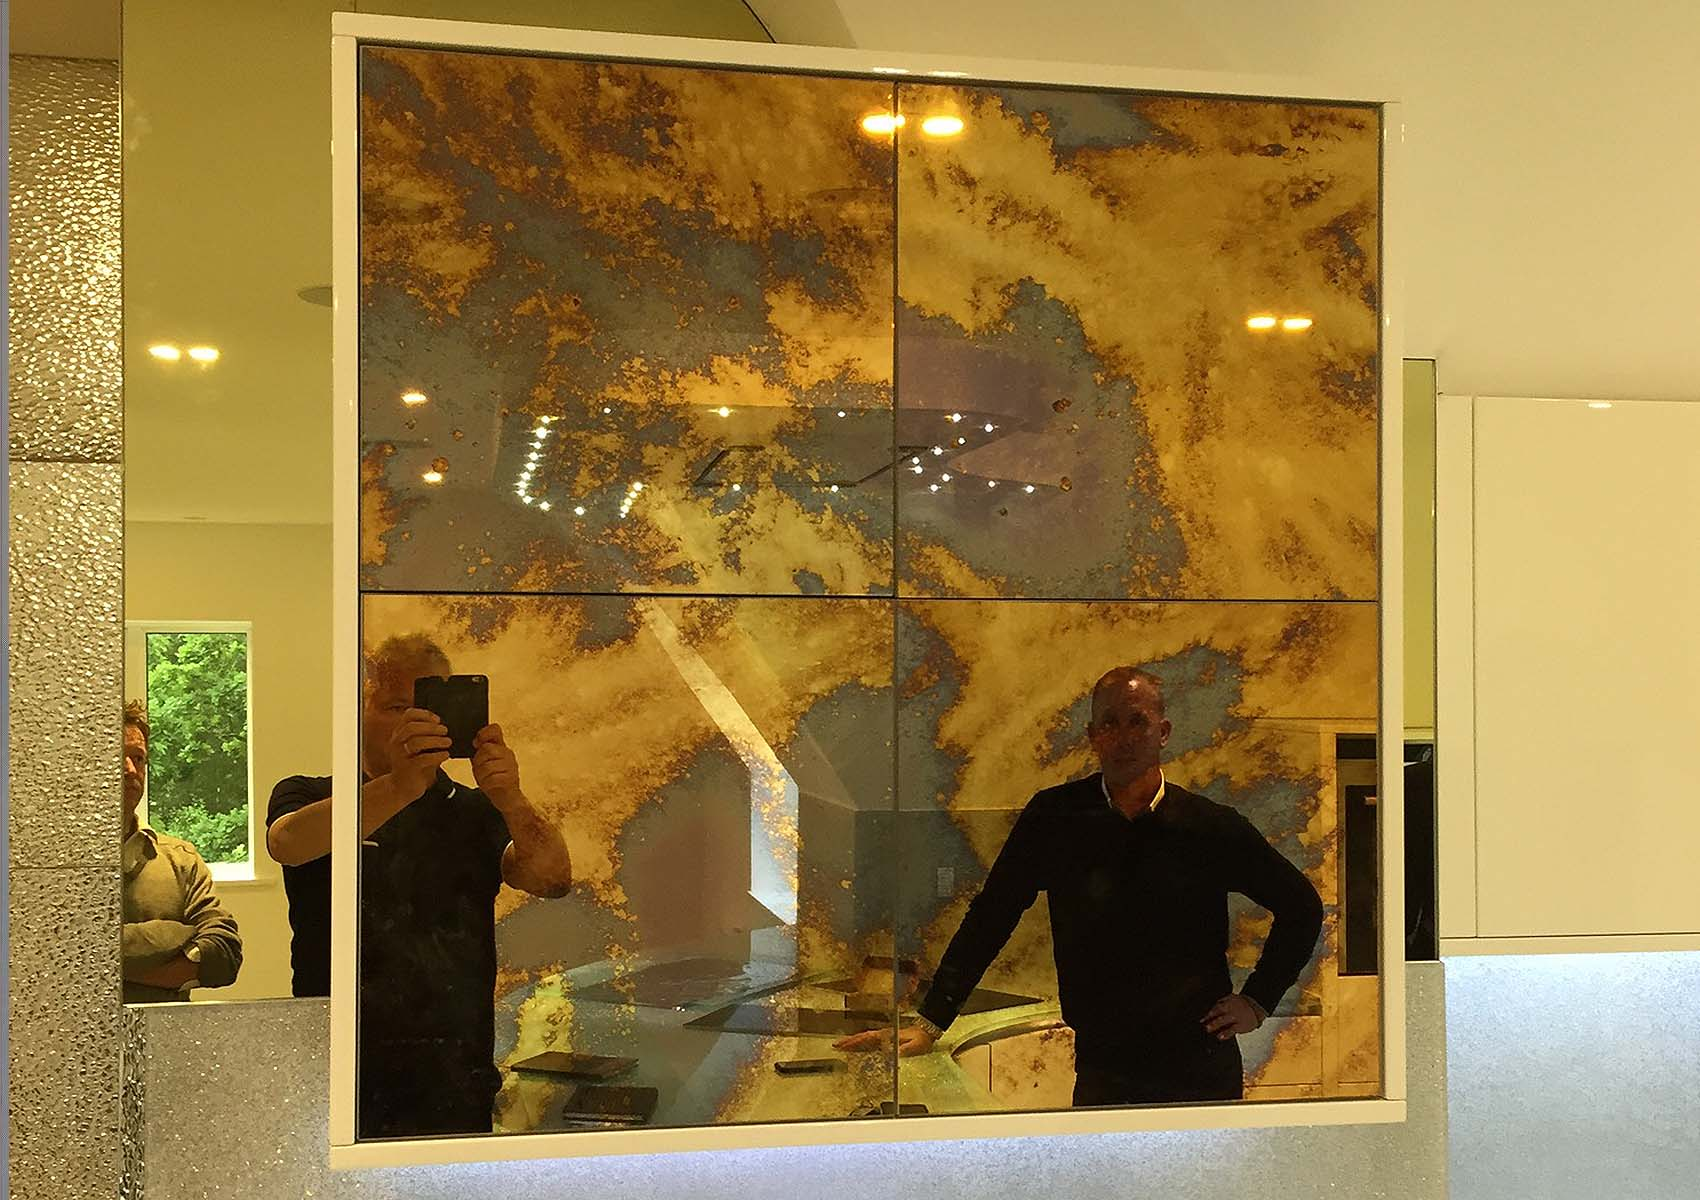 Byzantine style mirror glass feature wall with frame